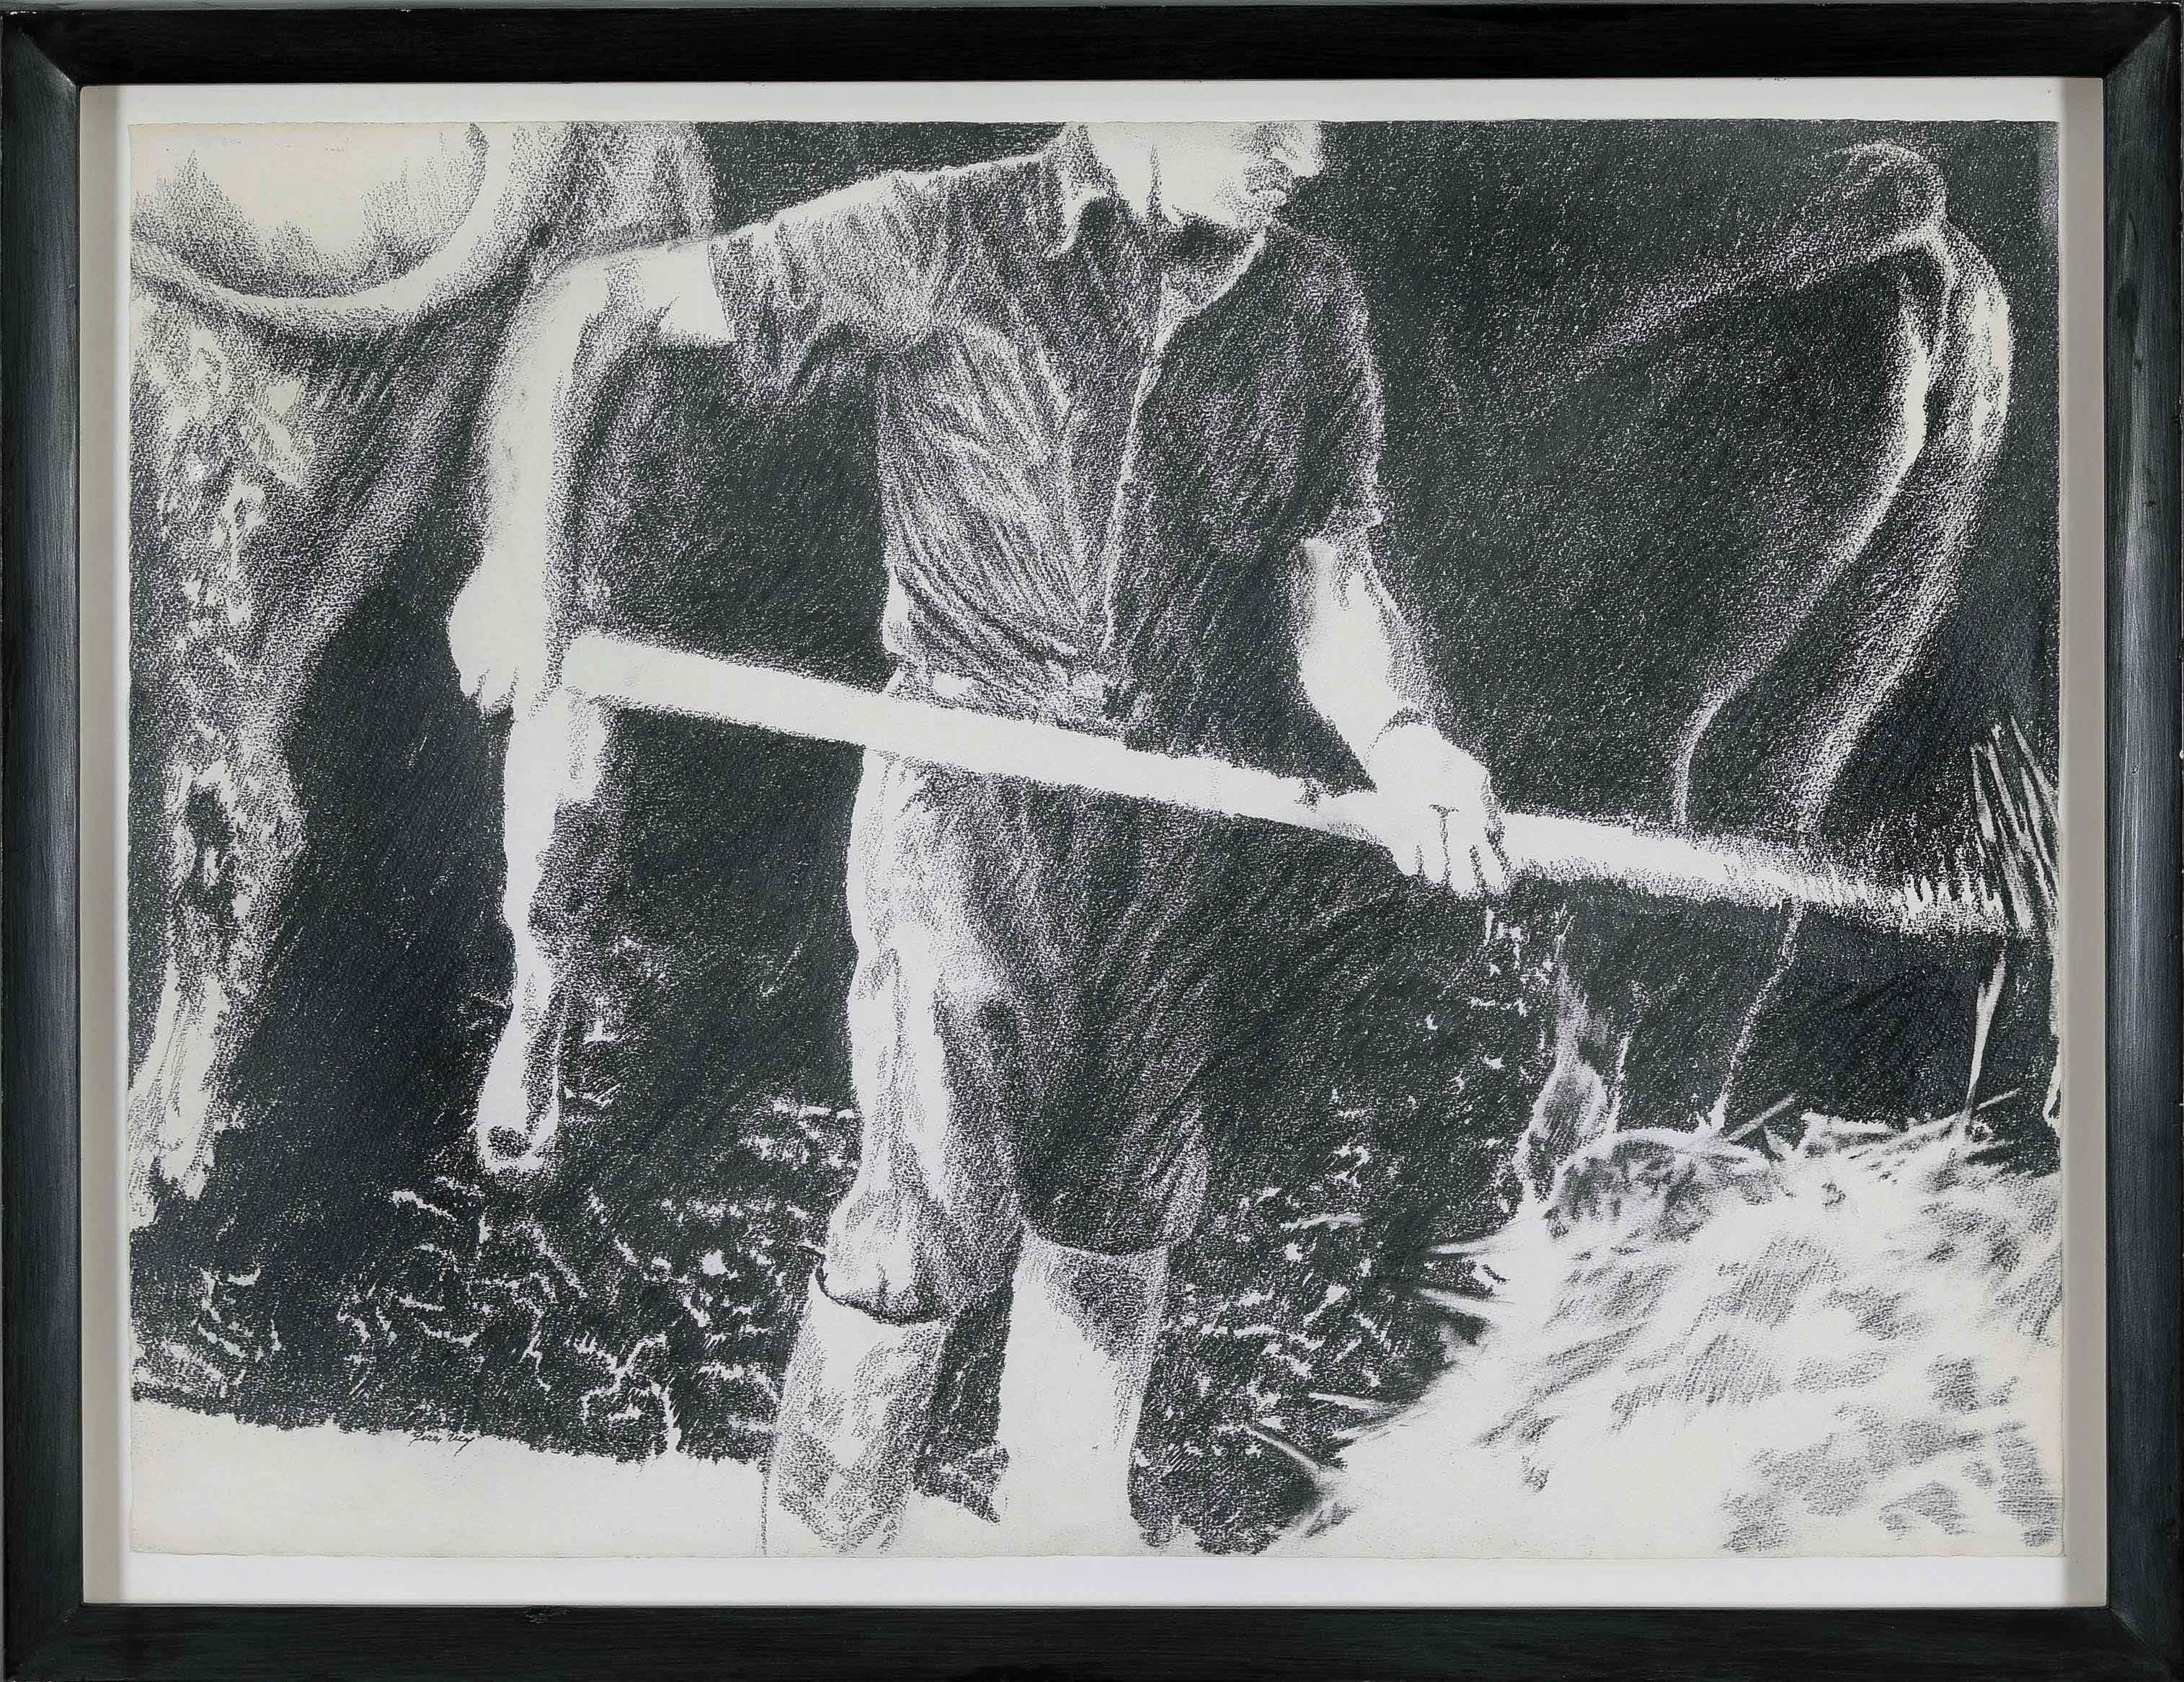 Large black and white drawing by Yvon Pissarro titled Farmhand in a Cowshed